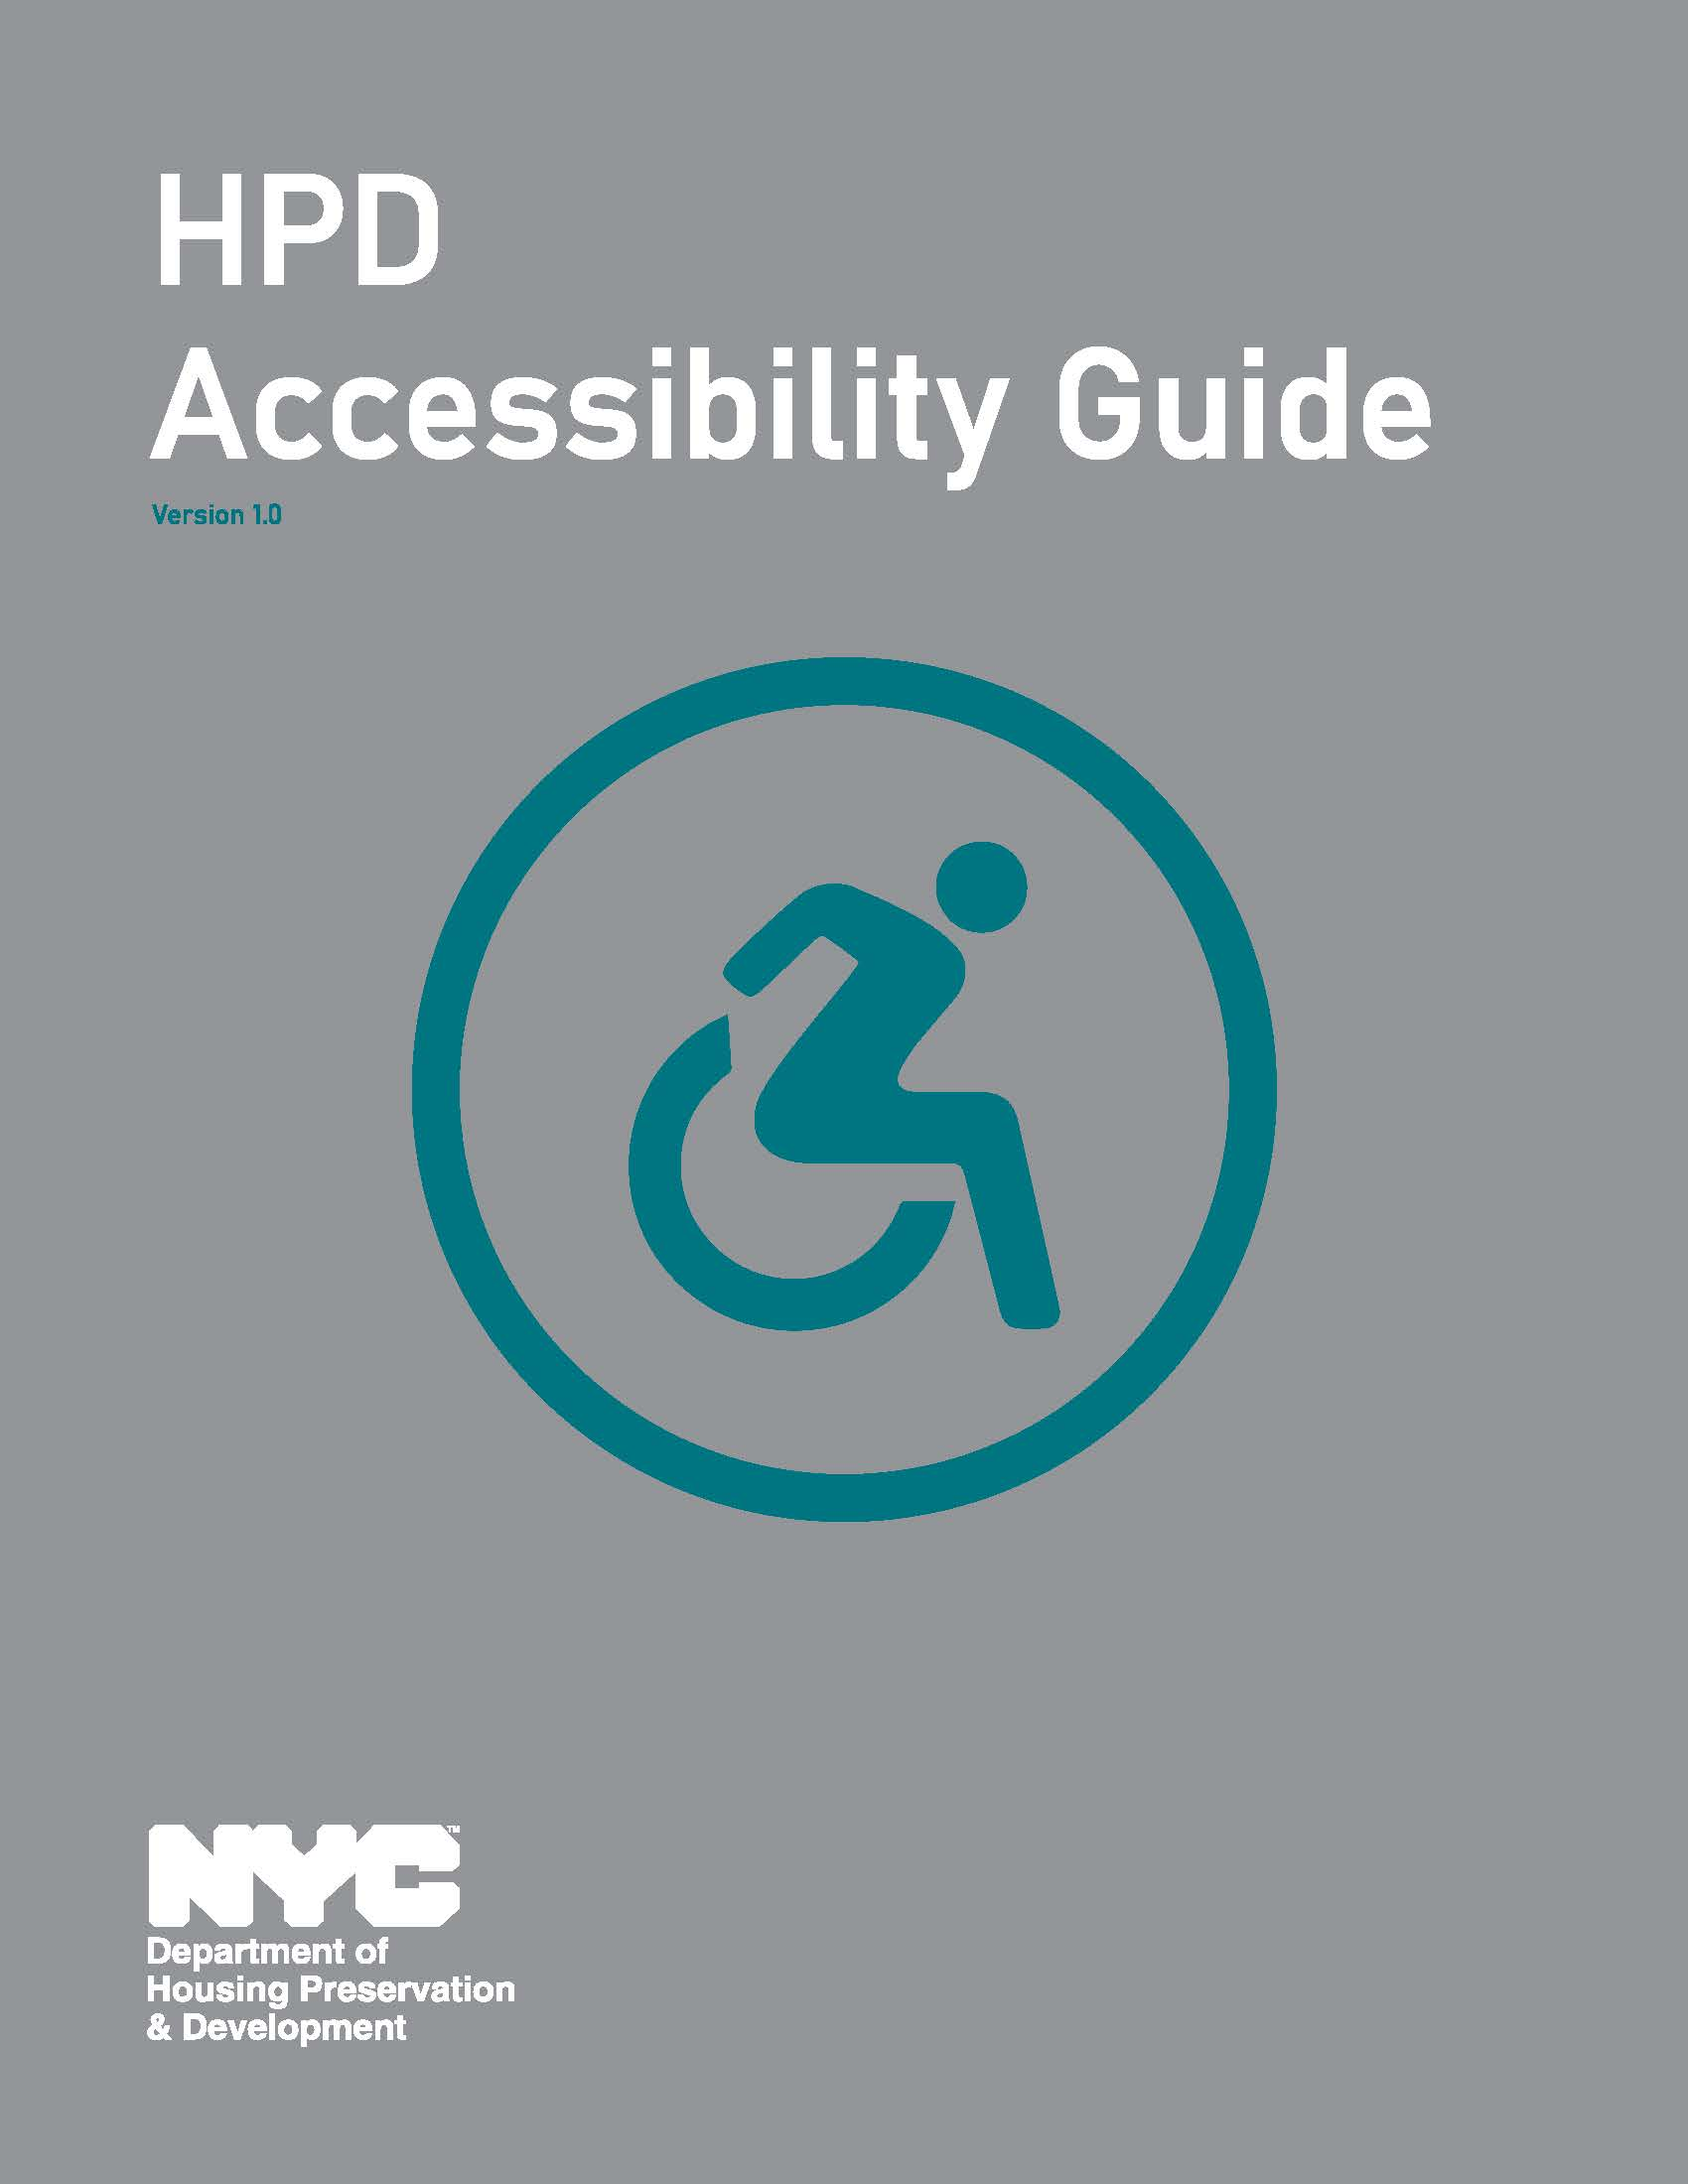 HPD Accessibility Guide cover page.